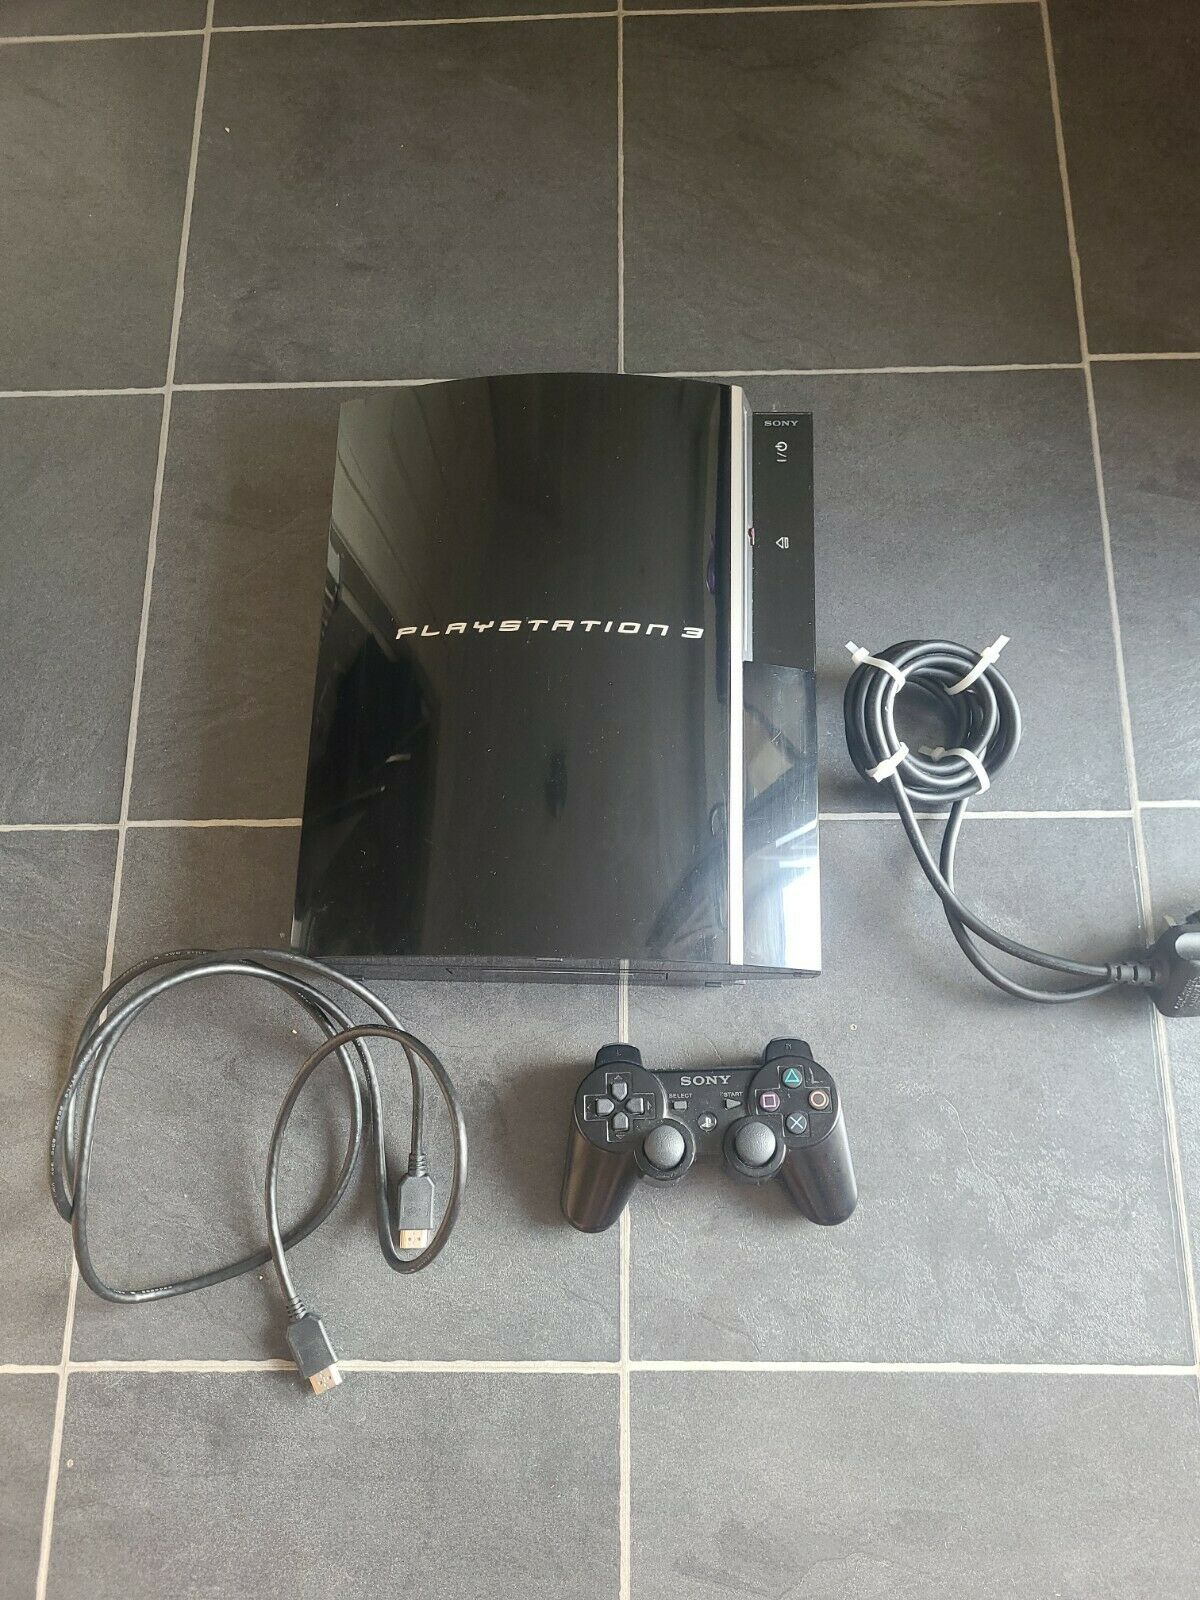 Sony PlayStation 3 Console - CECHJ03 Piano Black And Controller & Leads 40 GB